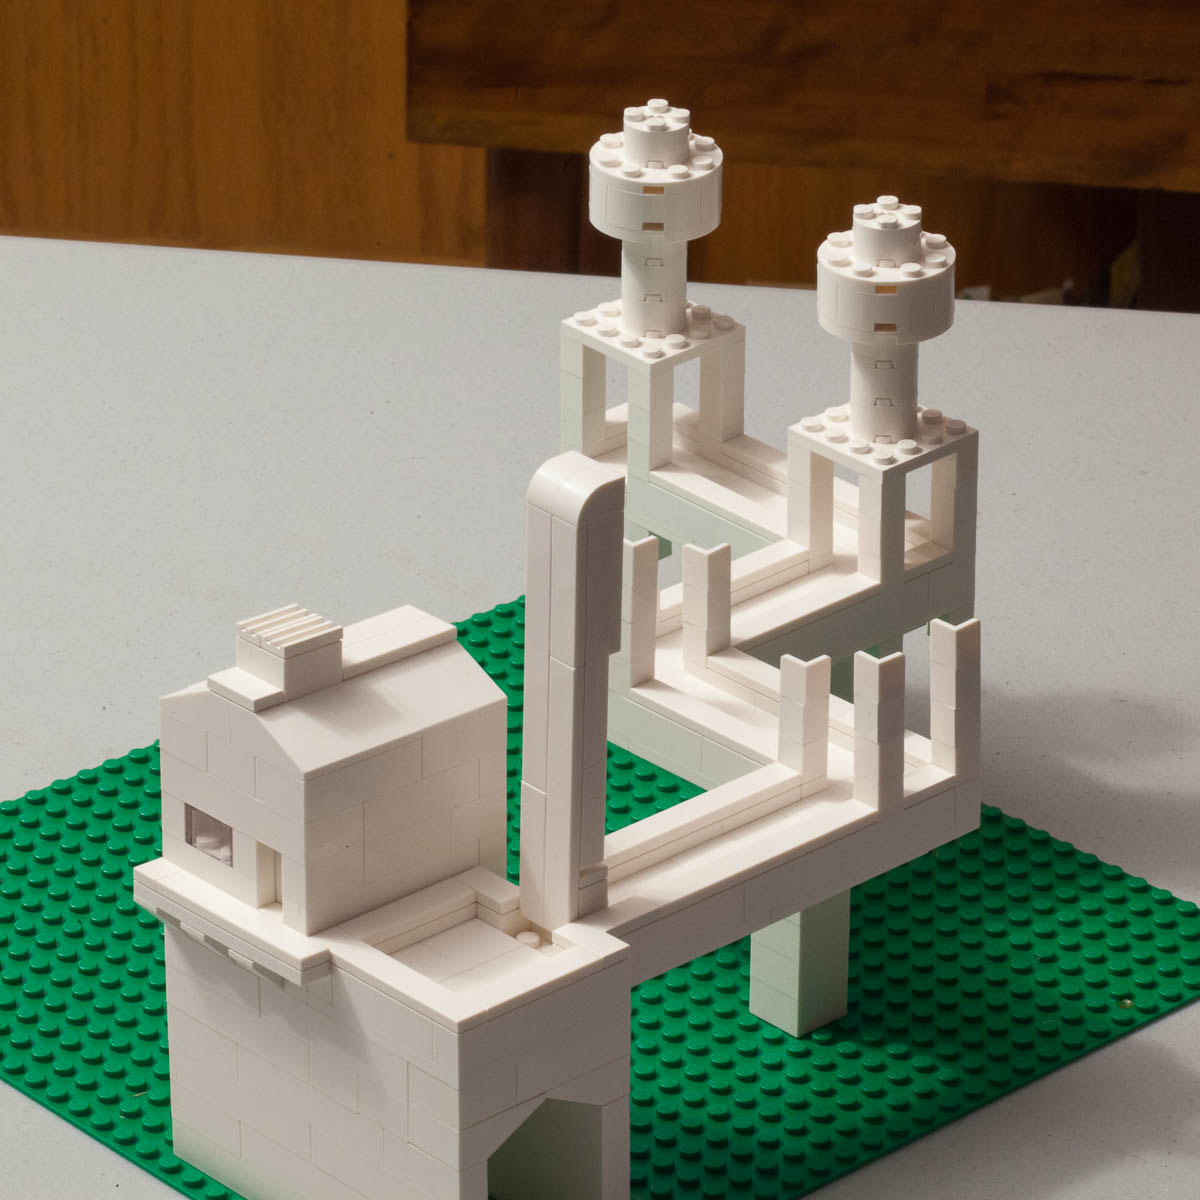 Lego Challenge #12: Build and photograph an impossible Escher model